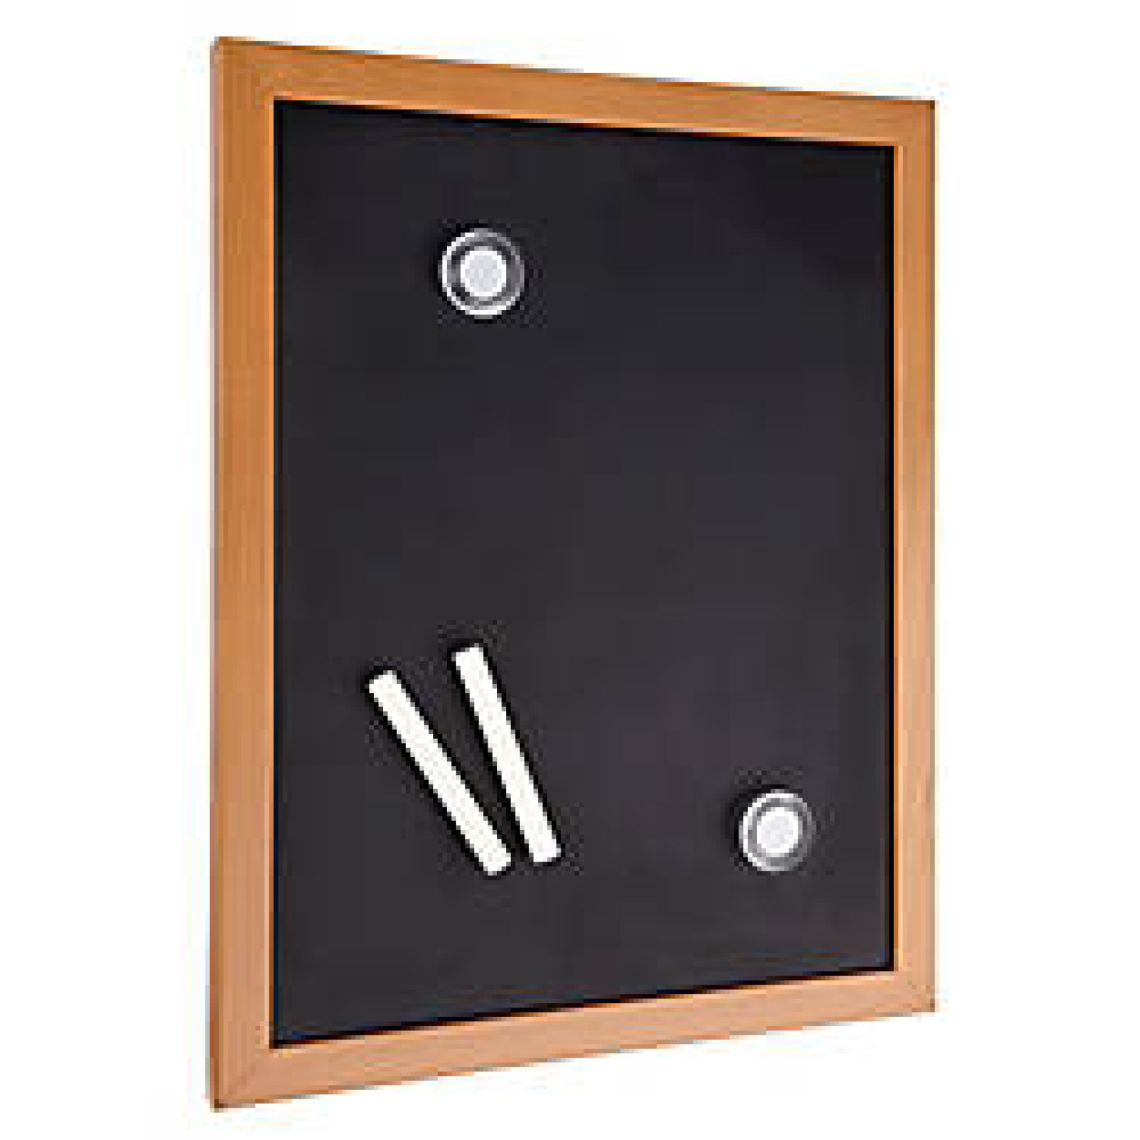 FORAY Magnetic Chalkboard 11 x 14 by Office Depot & OfficeMax